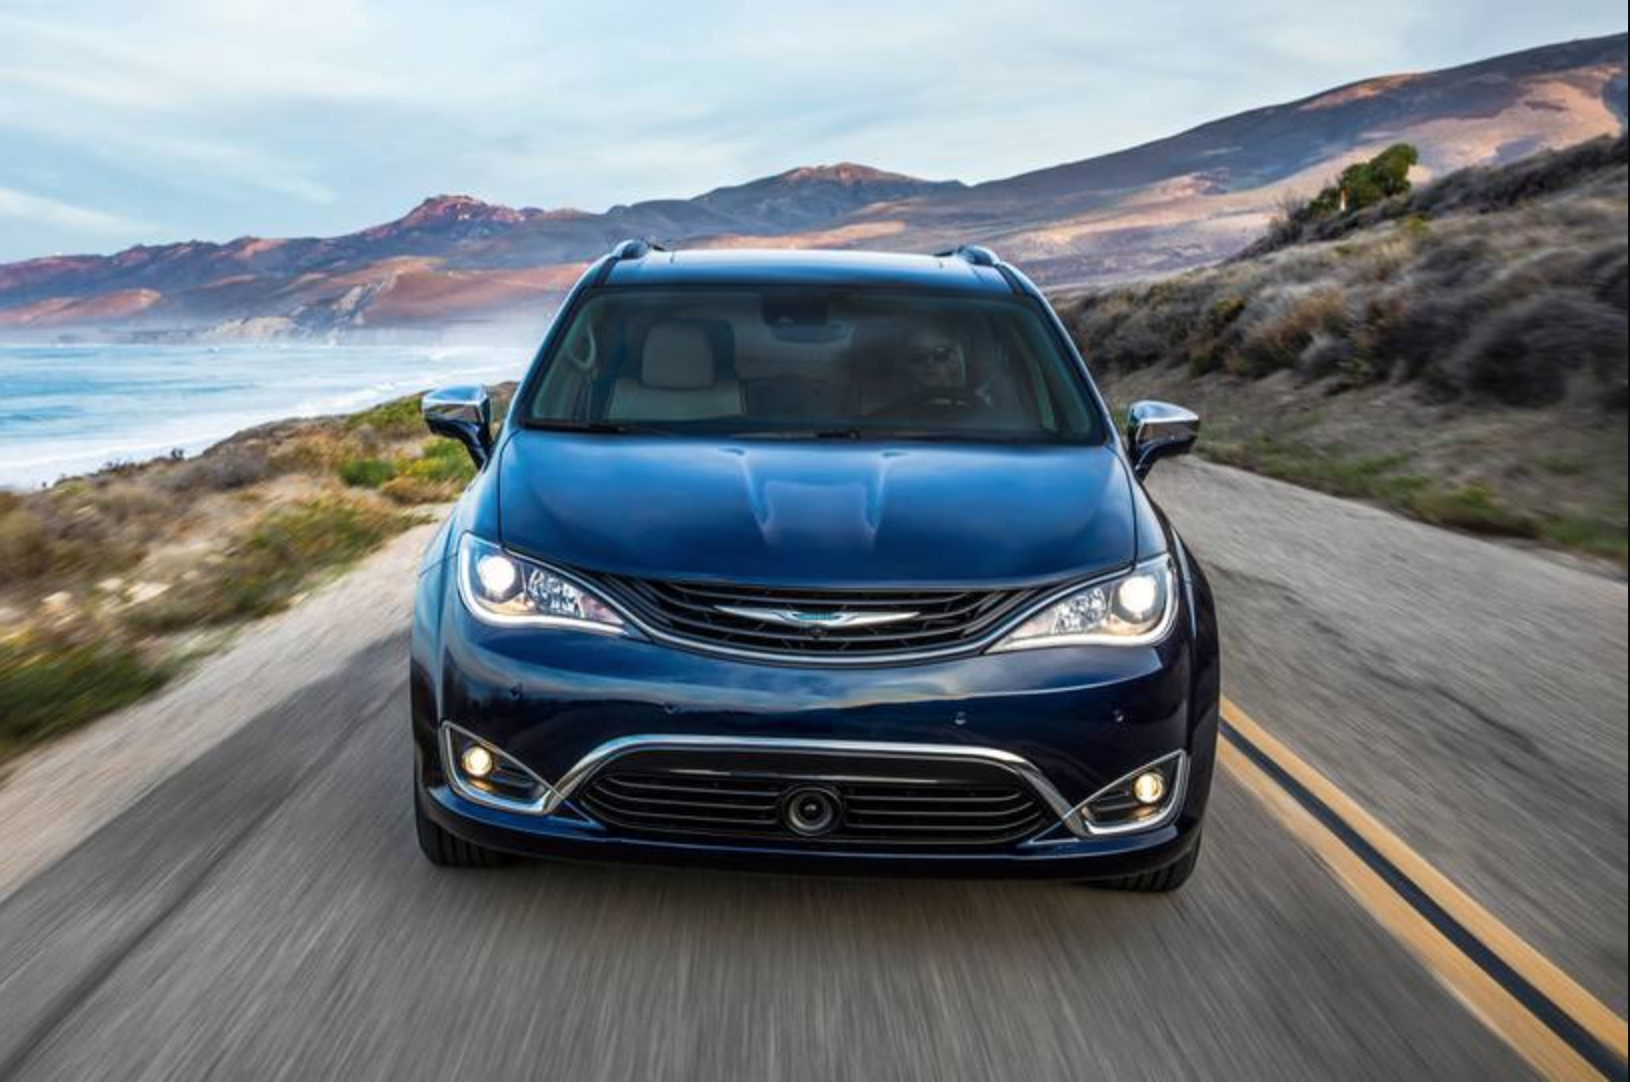 2019 Chrysler Pacifica in North Carolina